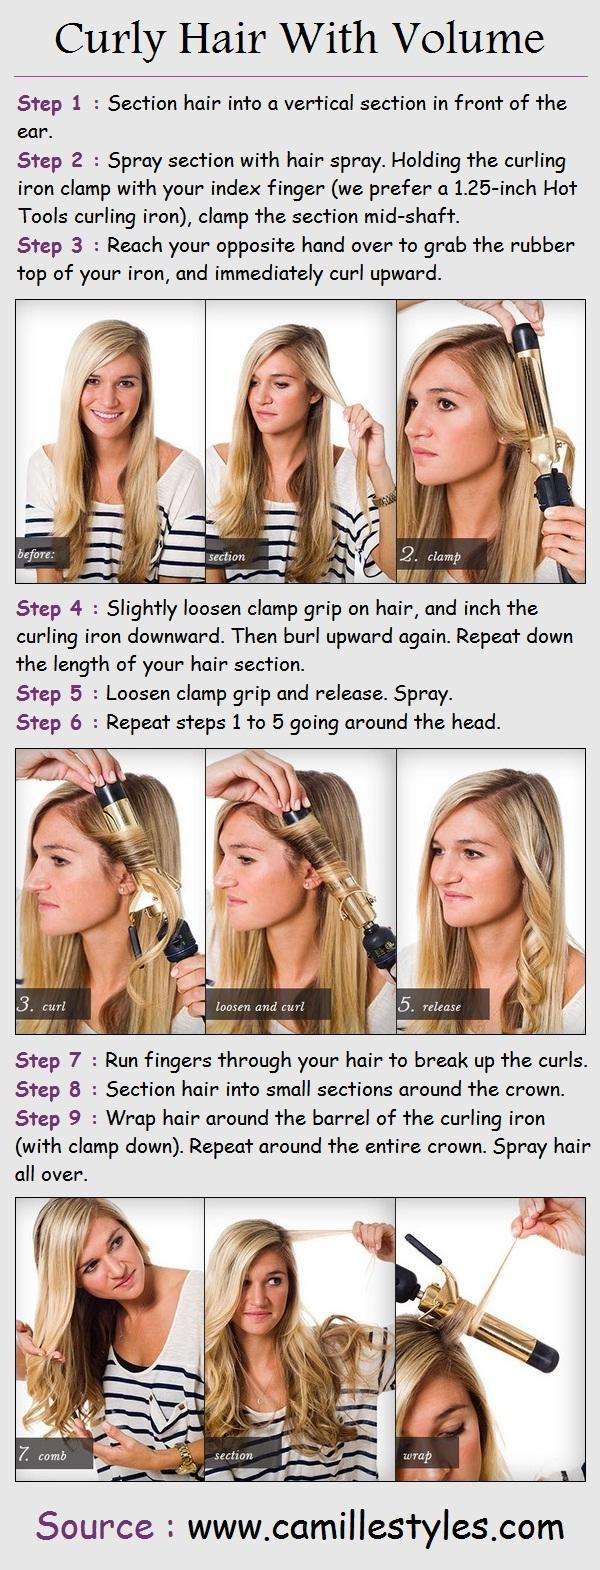 With nine different steps I have to be able to learn how to do this lol